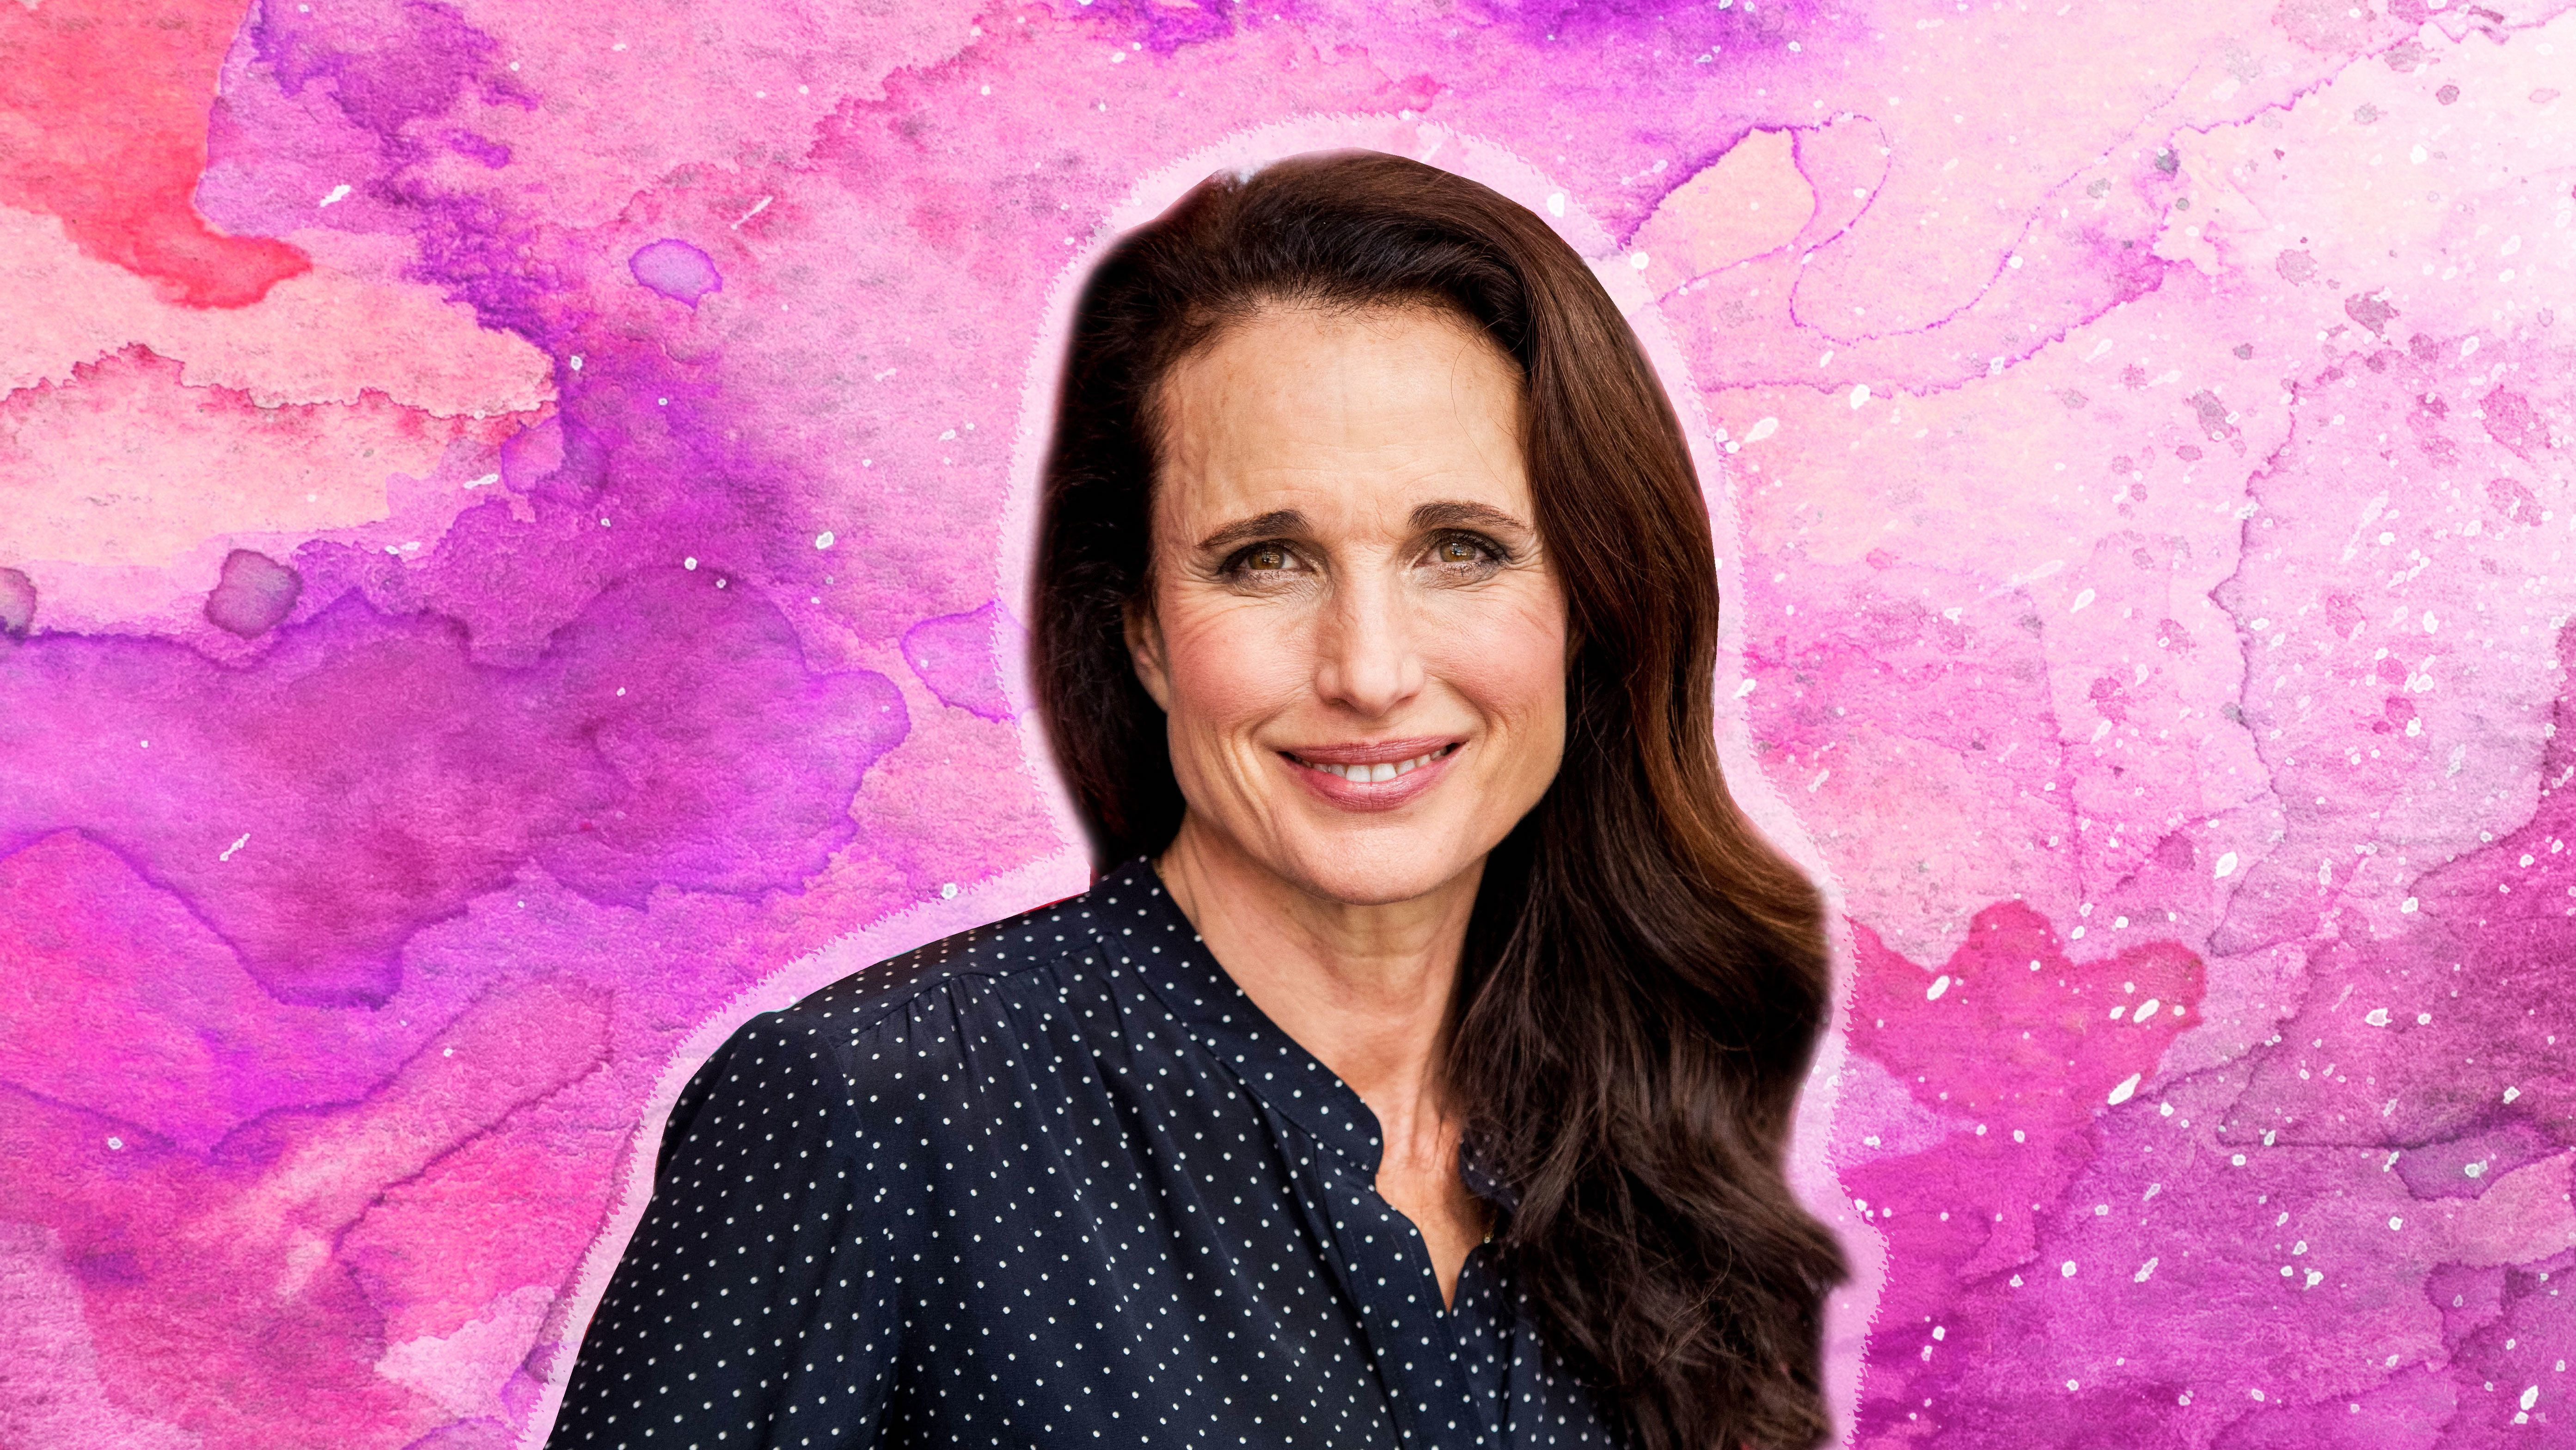 Andie MacDowell Climbed The Hollywood Ladder. Then She Decided She'd Rather Be 'Normal.'